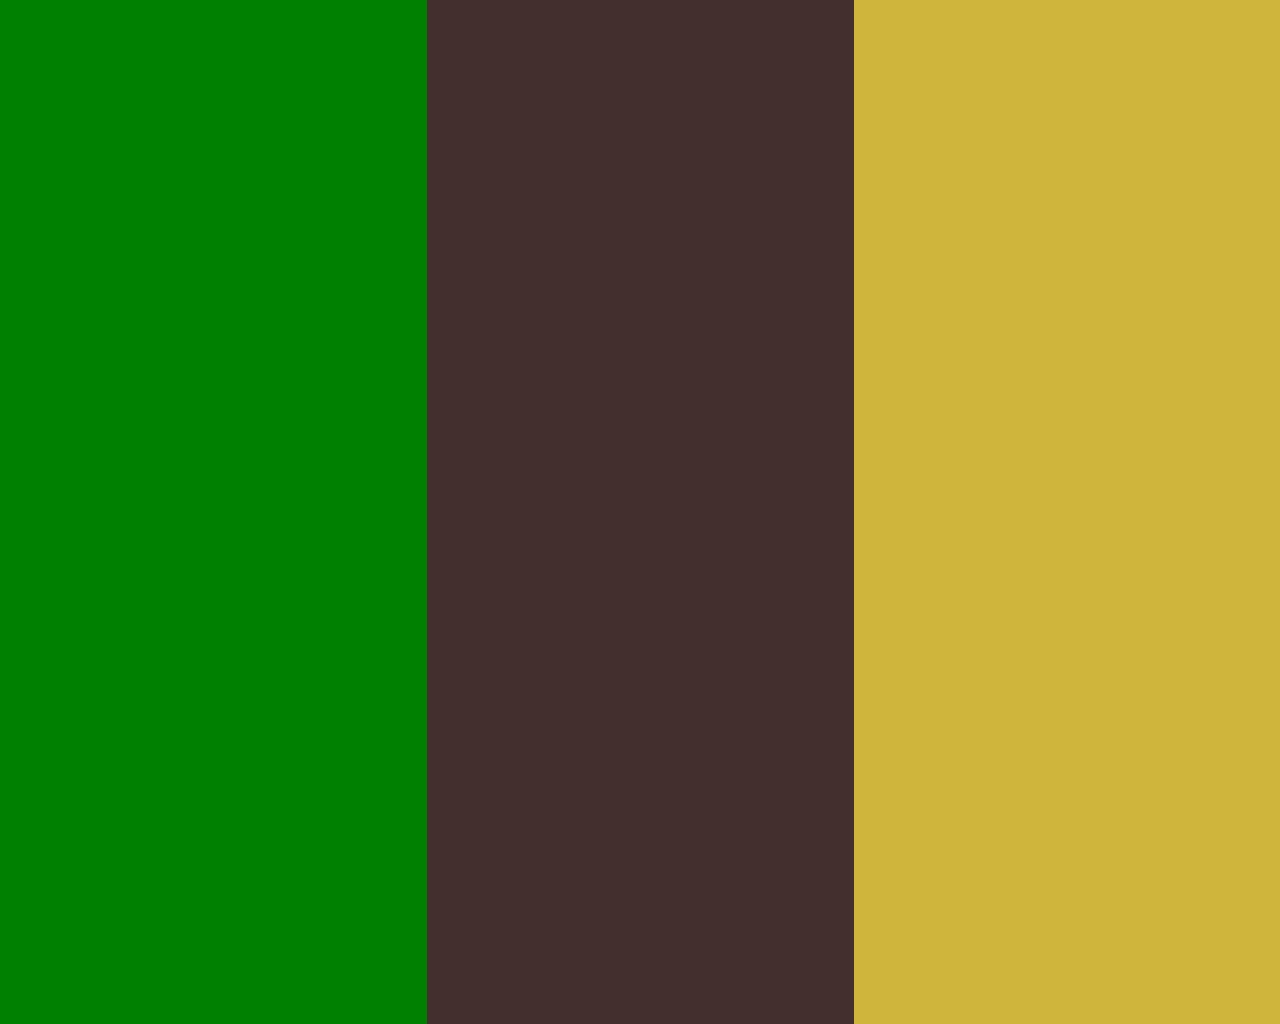 1280x1024 resolution Office Green Old Burgundy and Old Gold 1280x1024